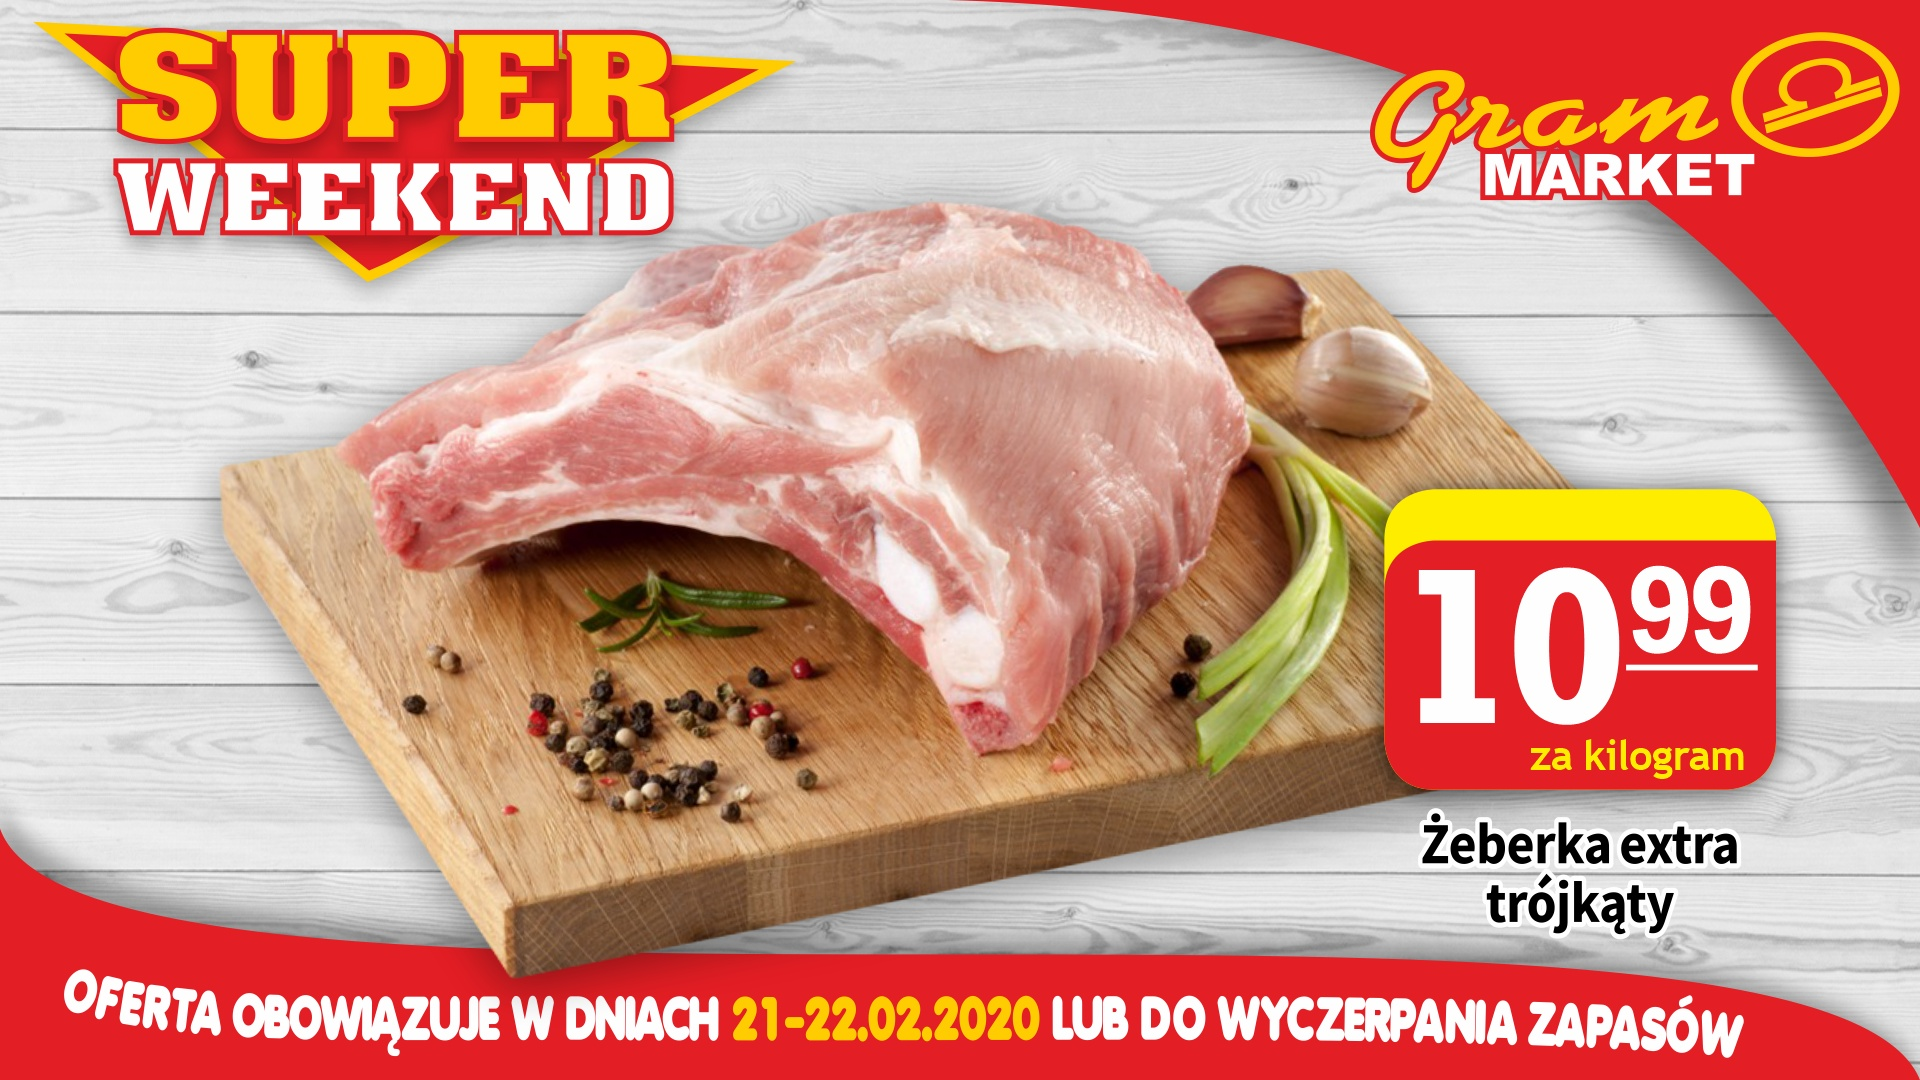 SUPER_WEEKEND-21-22-1